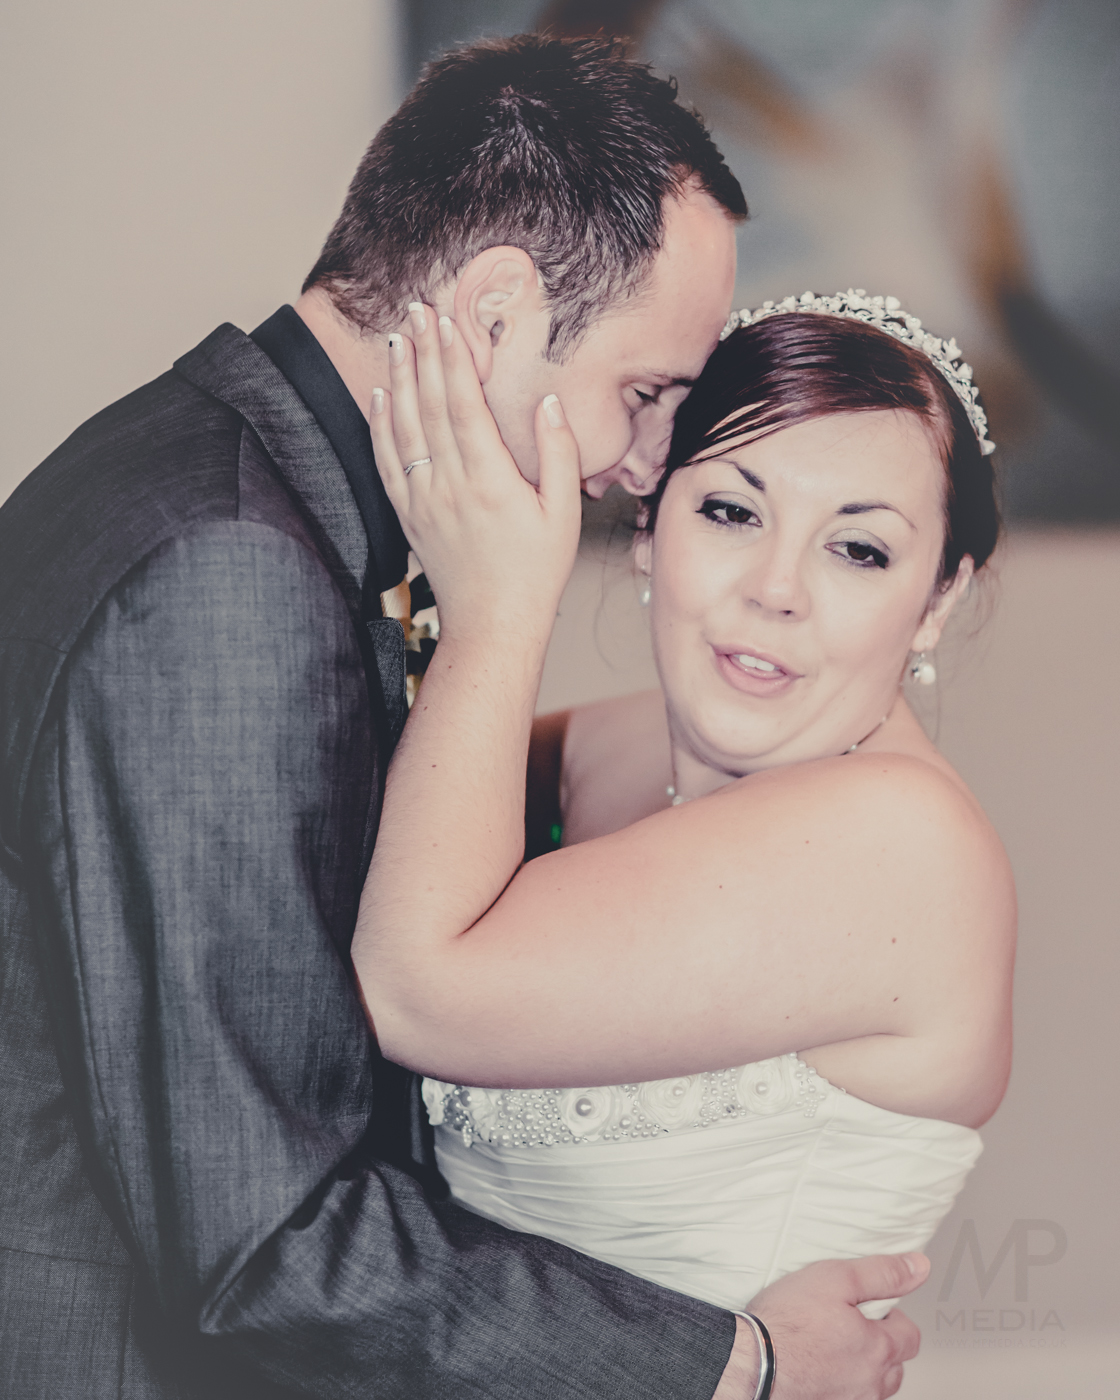 601 - Chris and Natalies Wedding (MAIN) - DO NOT SHARE THIS IMAGES ONLINE -4934.JPG